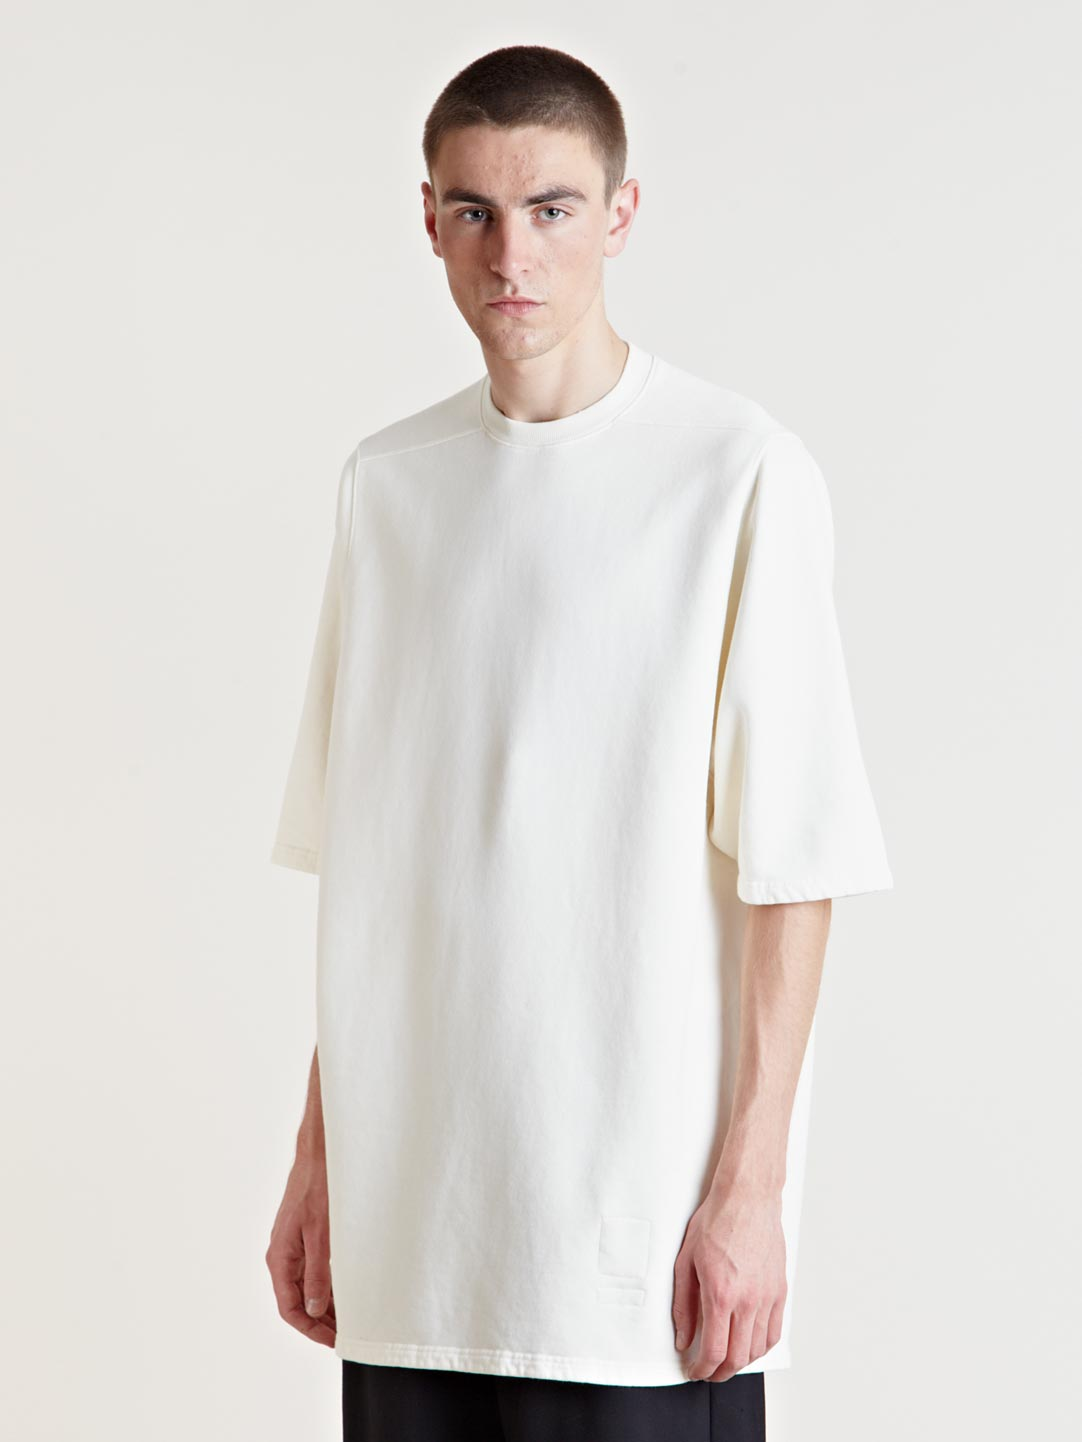 drkshdw by rick owens mens jumbo tshirt in white for men